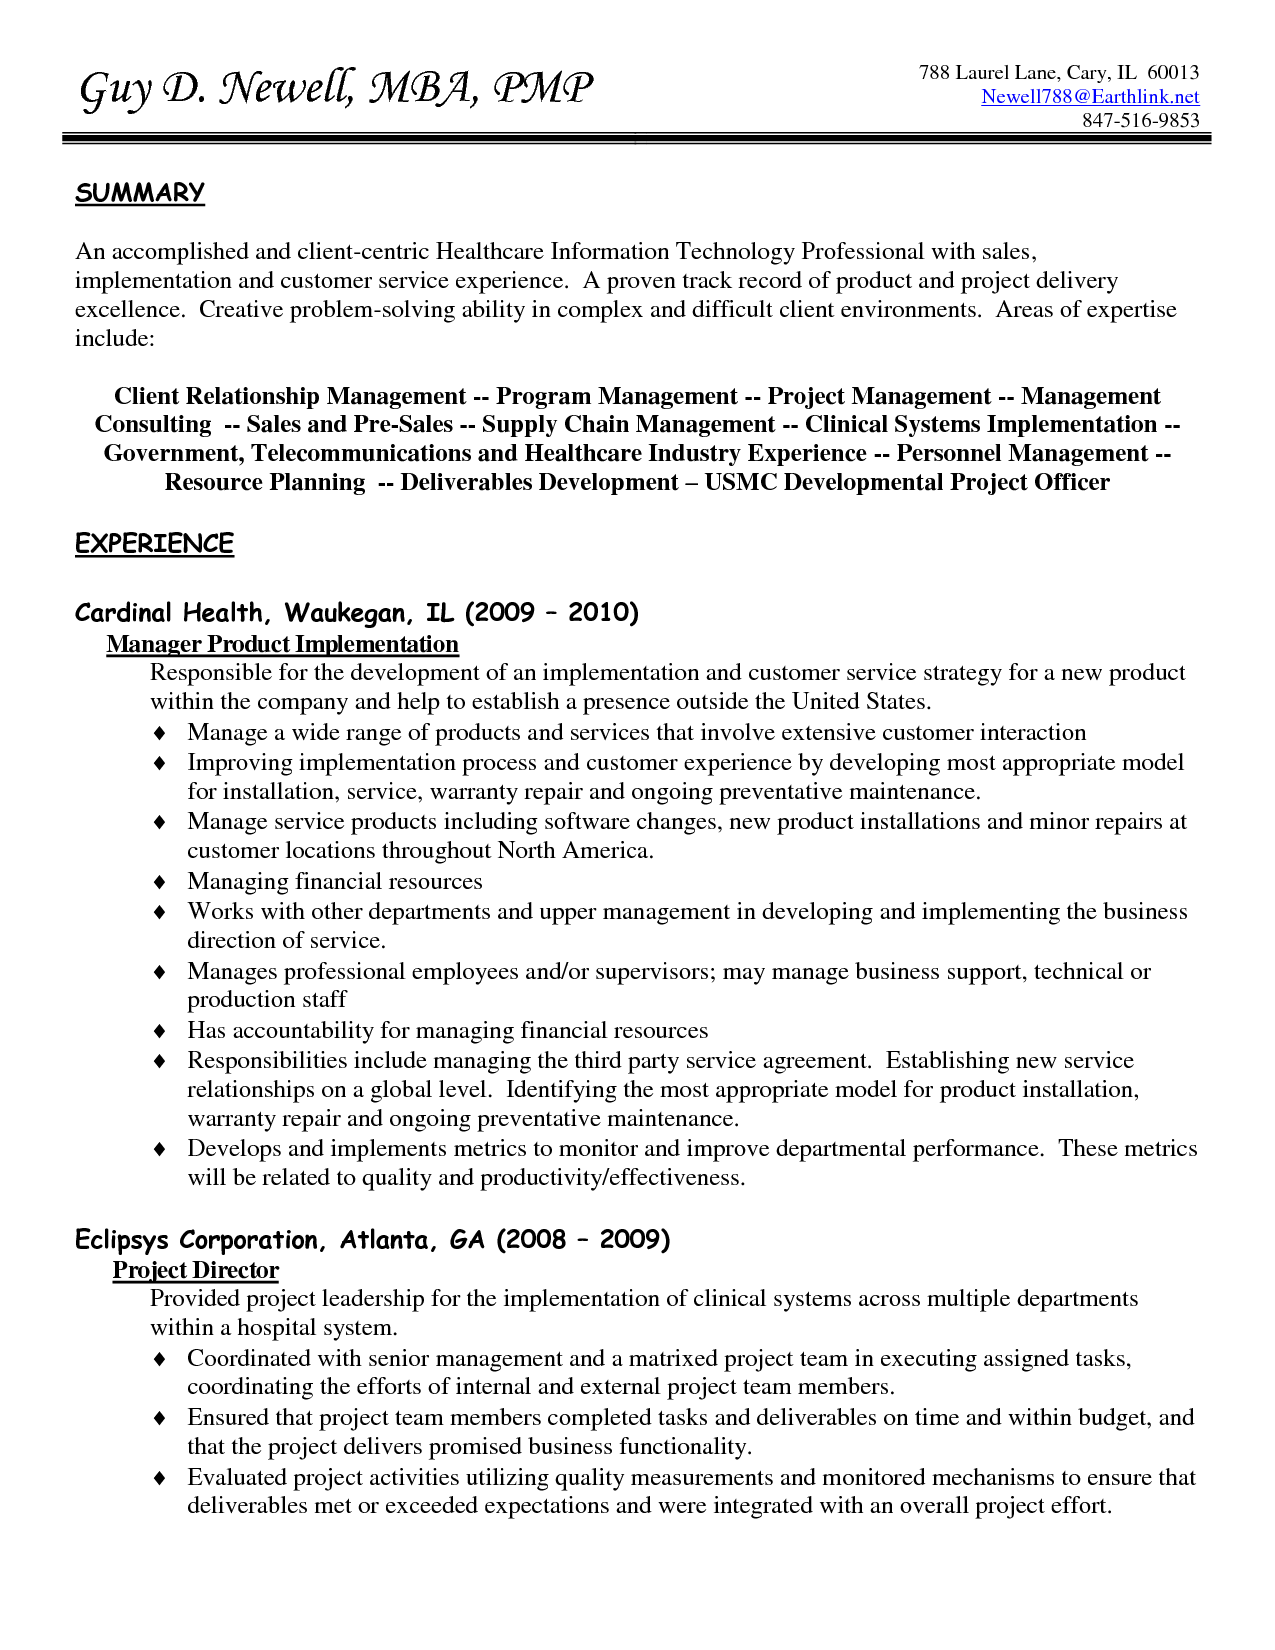 Customer Service Experience Resume http//www